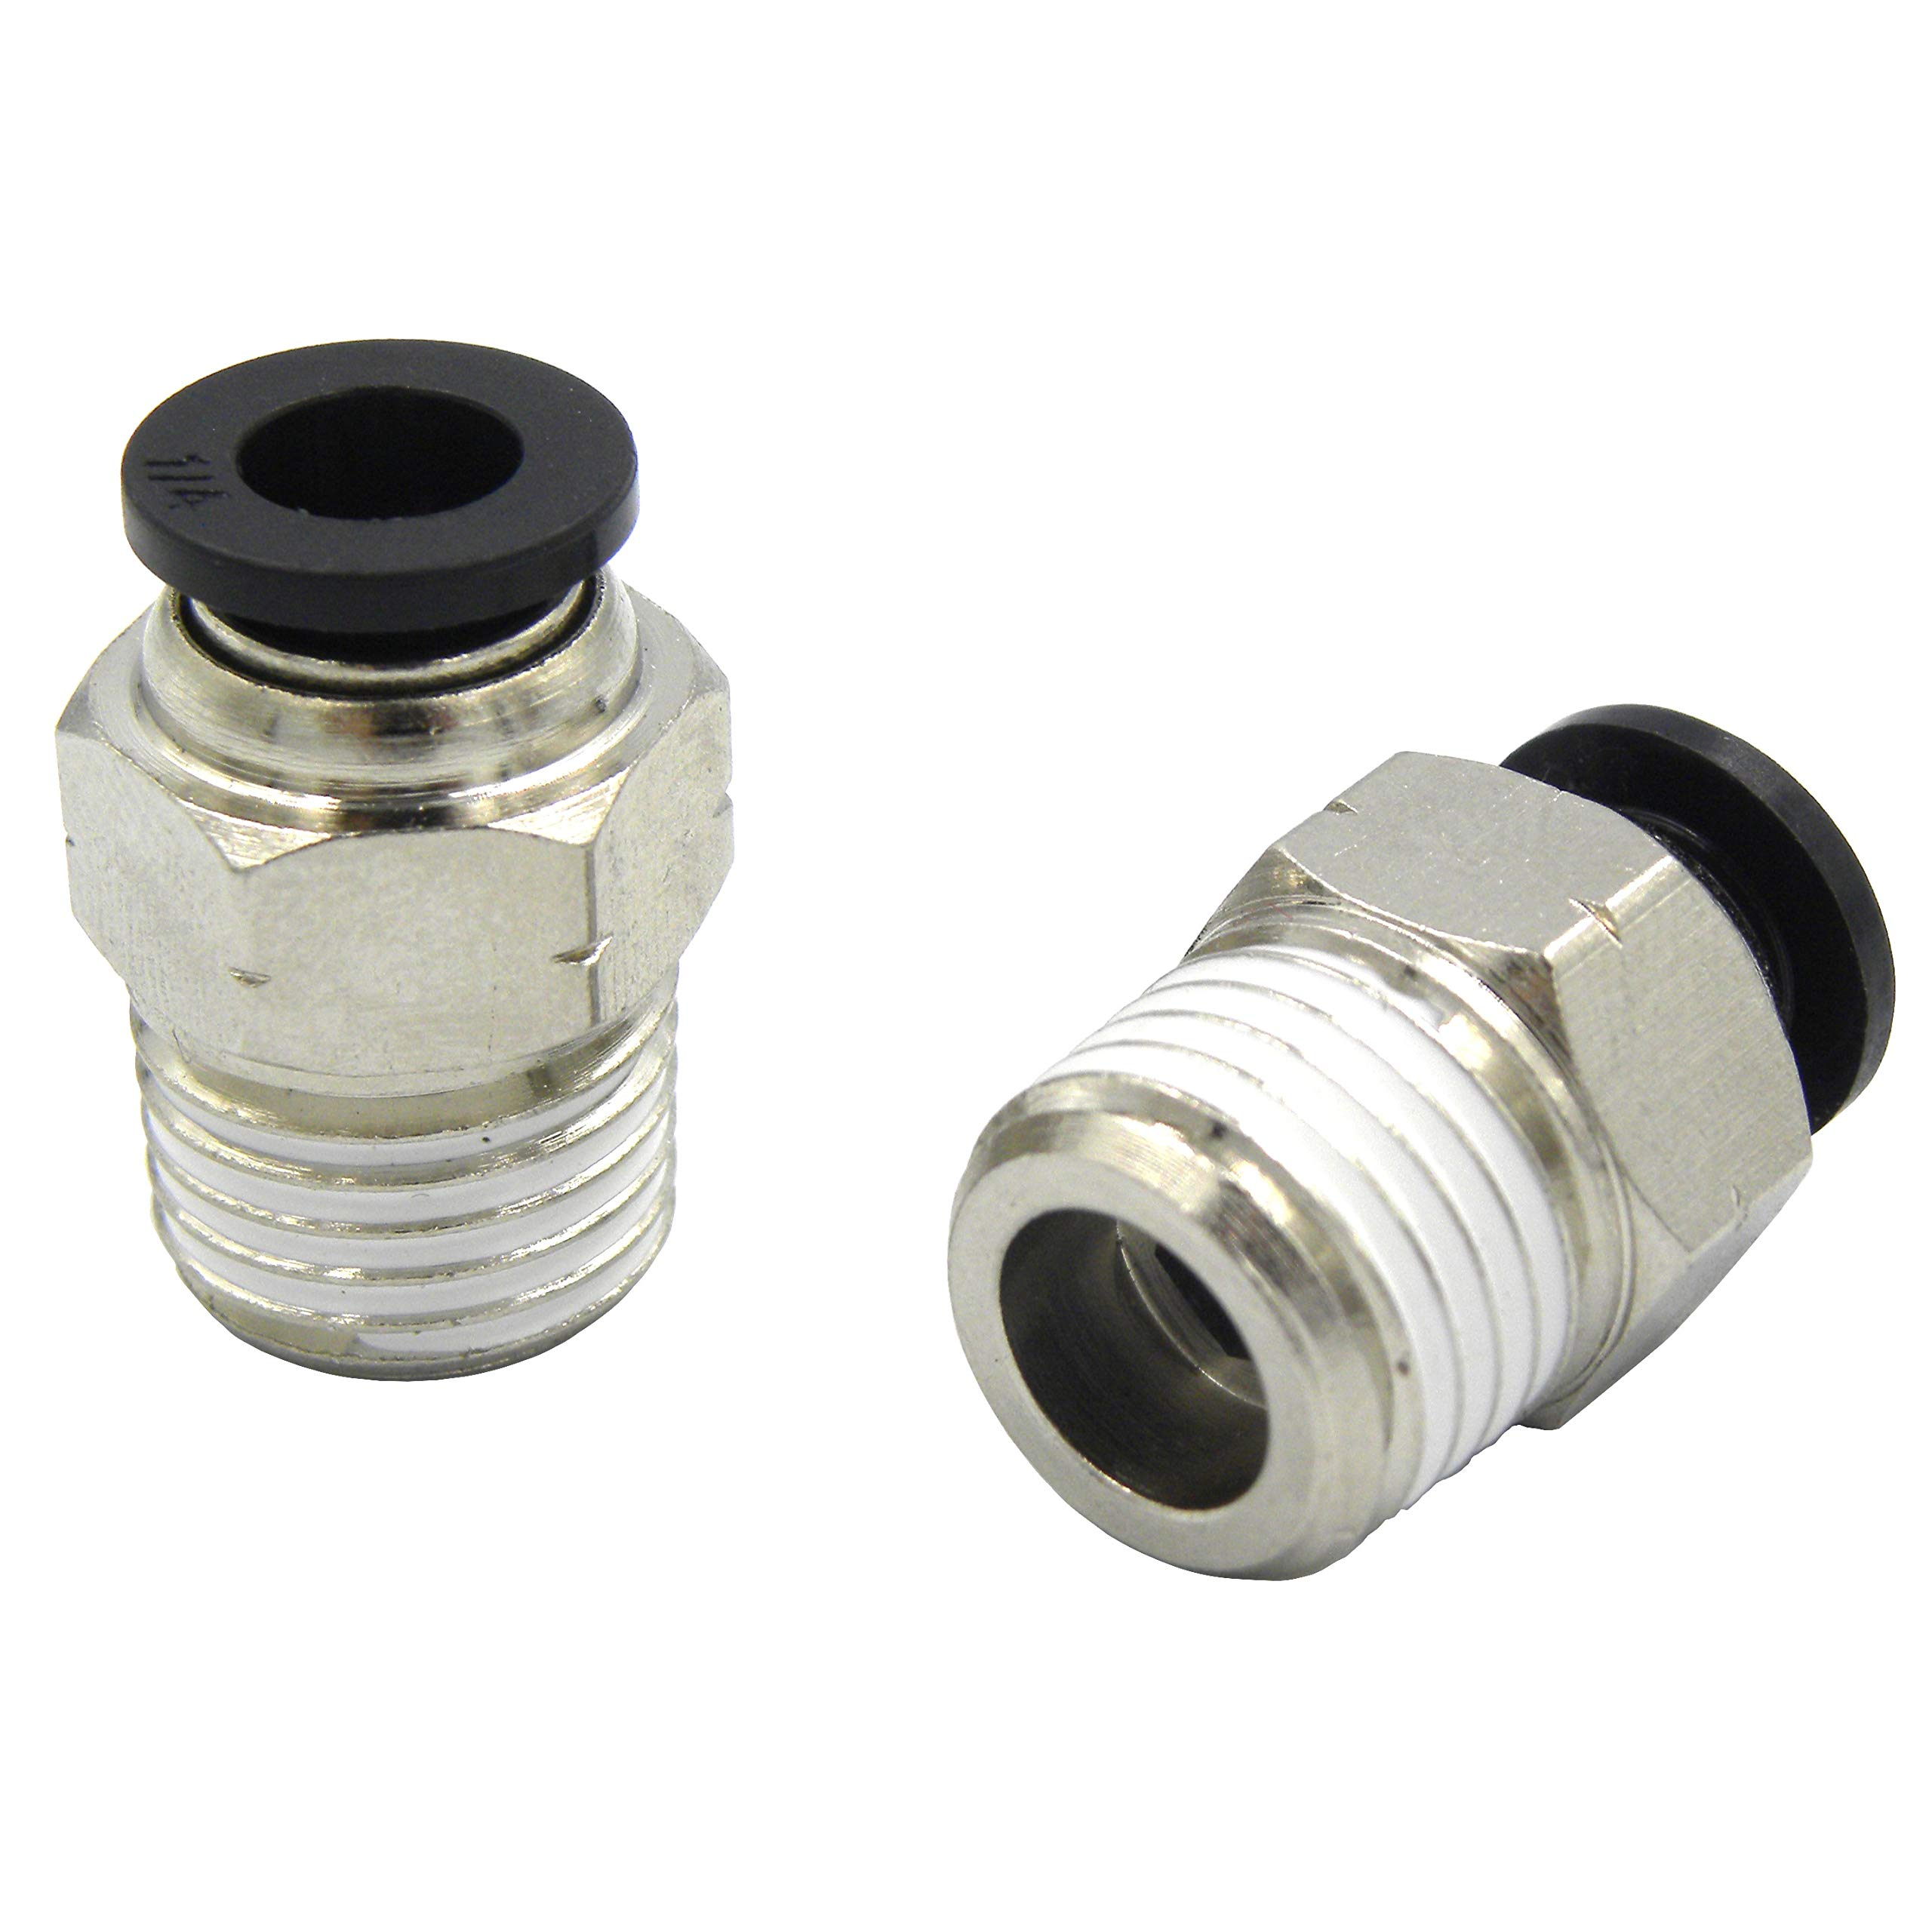 Wanm Pneumatic Round Male Straight - 1/2'' Tube OD x 3/8'' Inch NPT Thread Push to Connect Tube Fittings(10 per Pack)